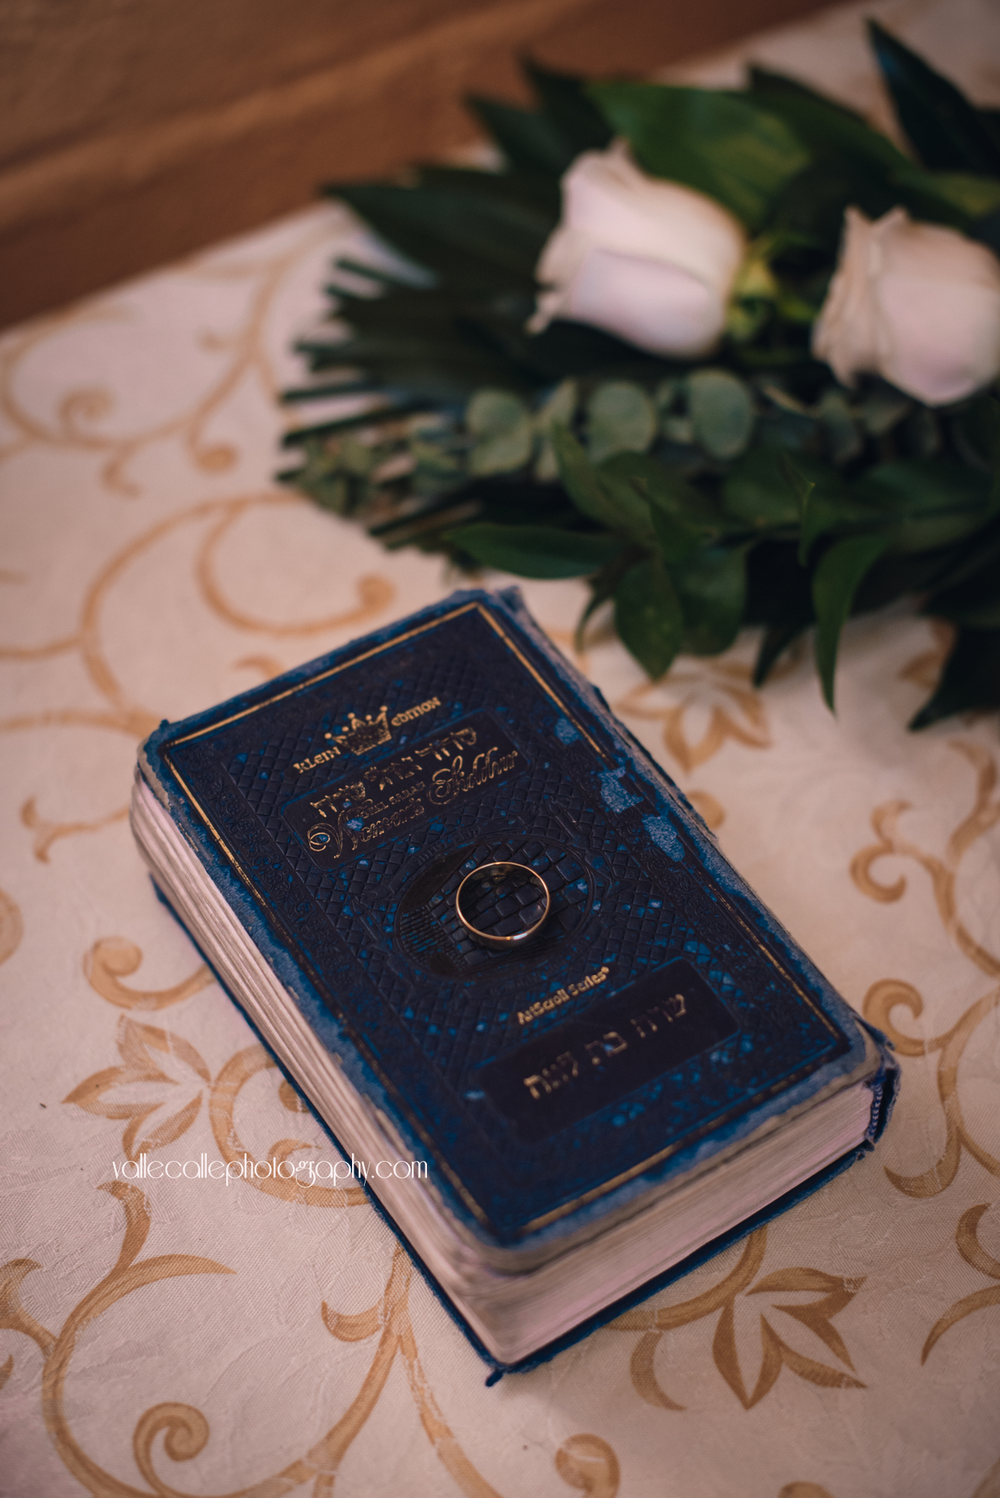 siddur_ring_photography